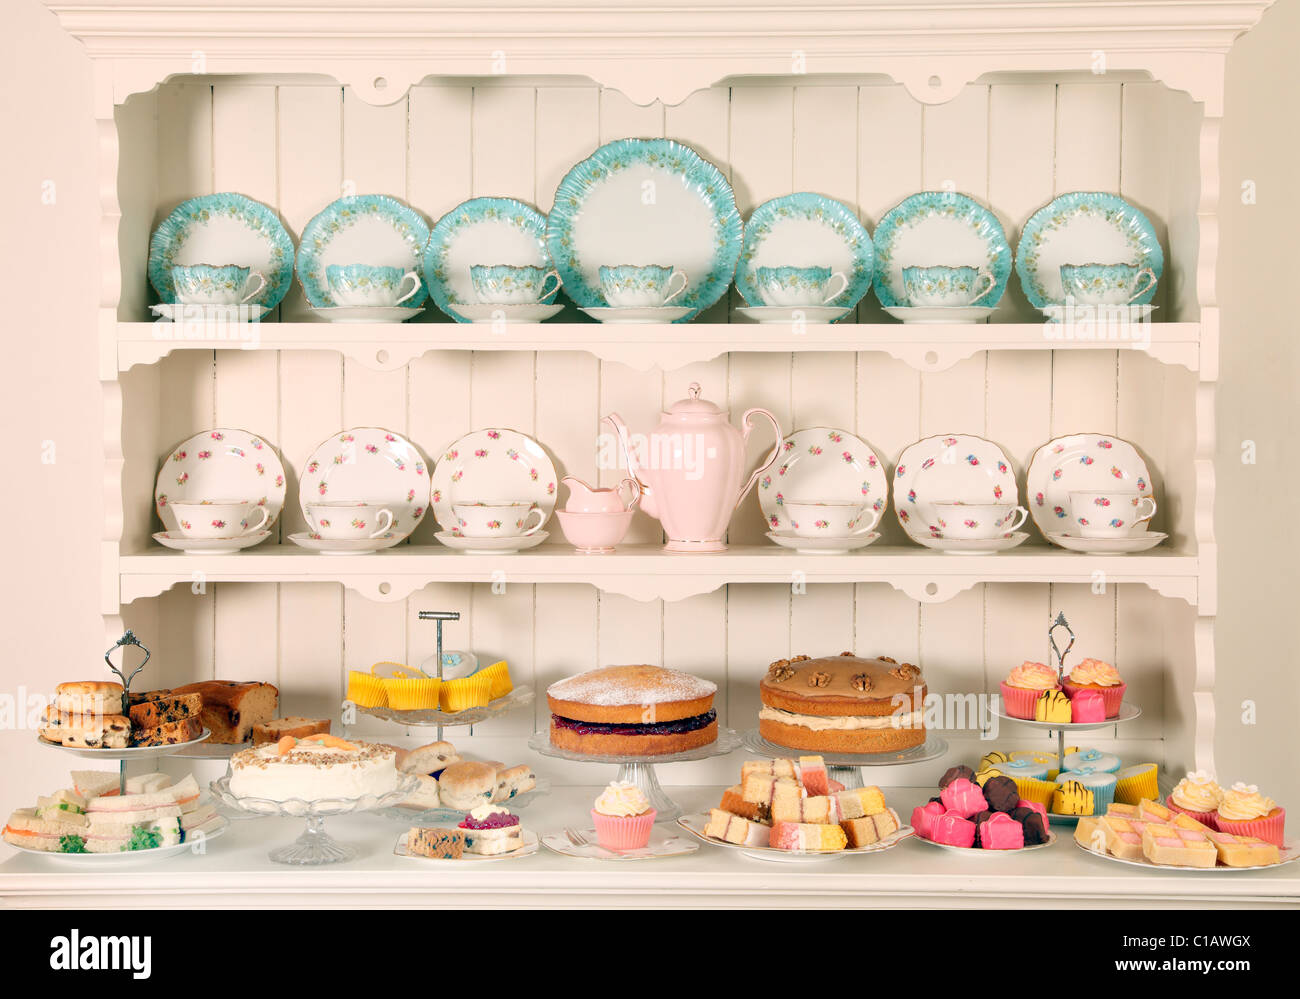 VINTAGE CHINA TEACUPS WITH CAKES - Stock Image